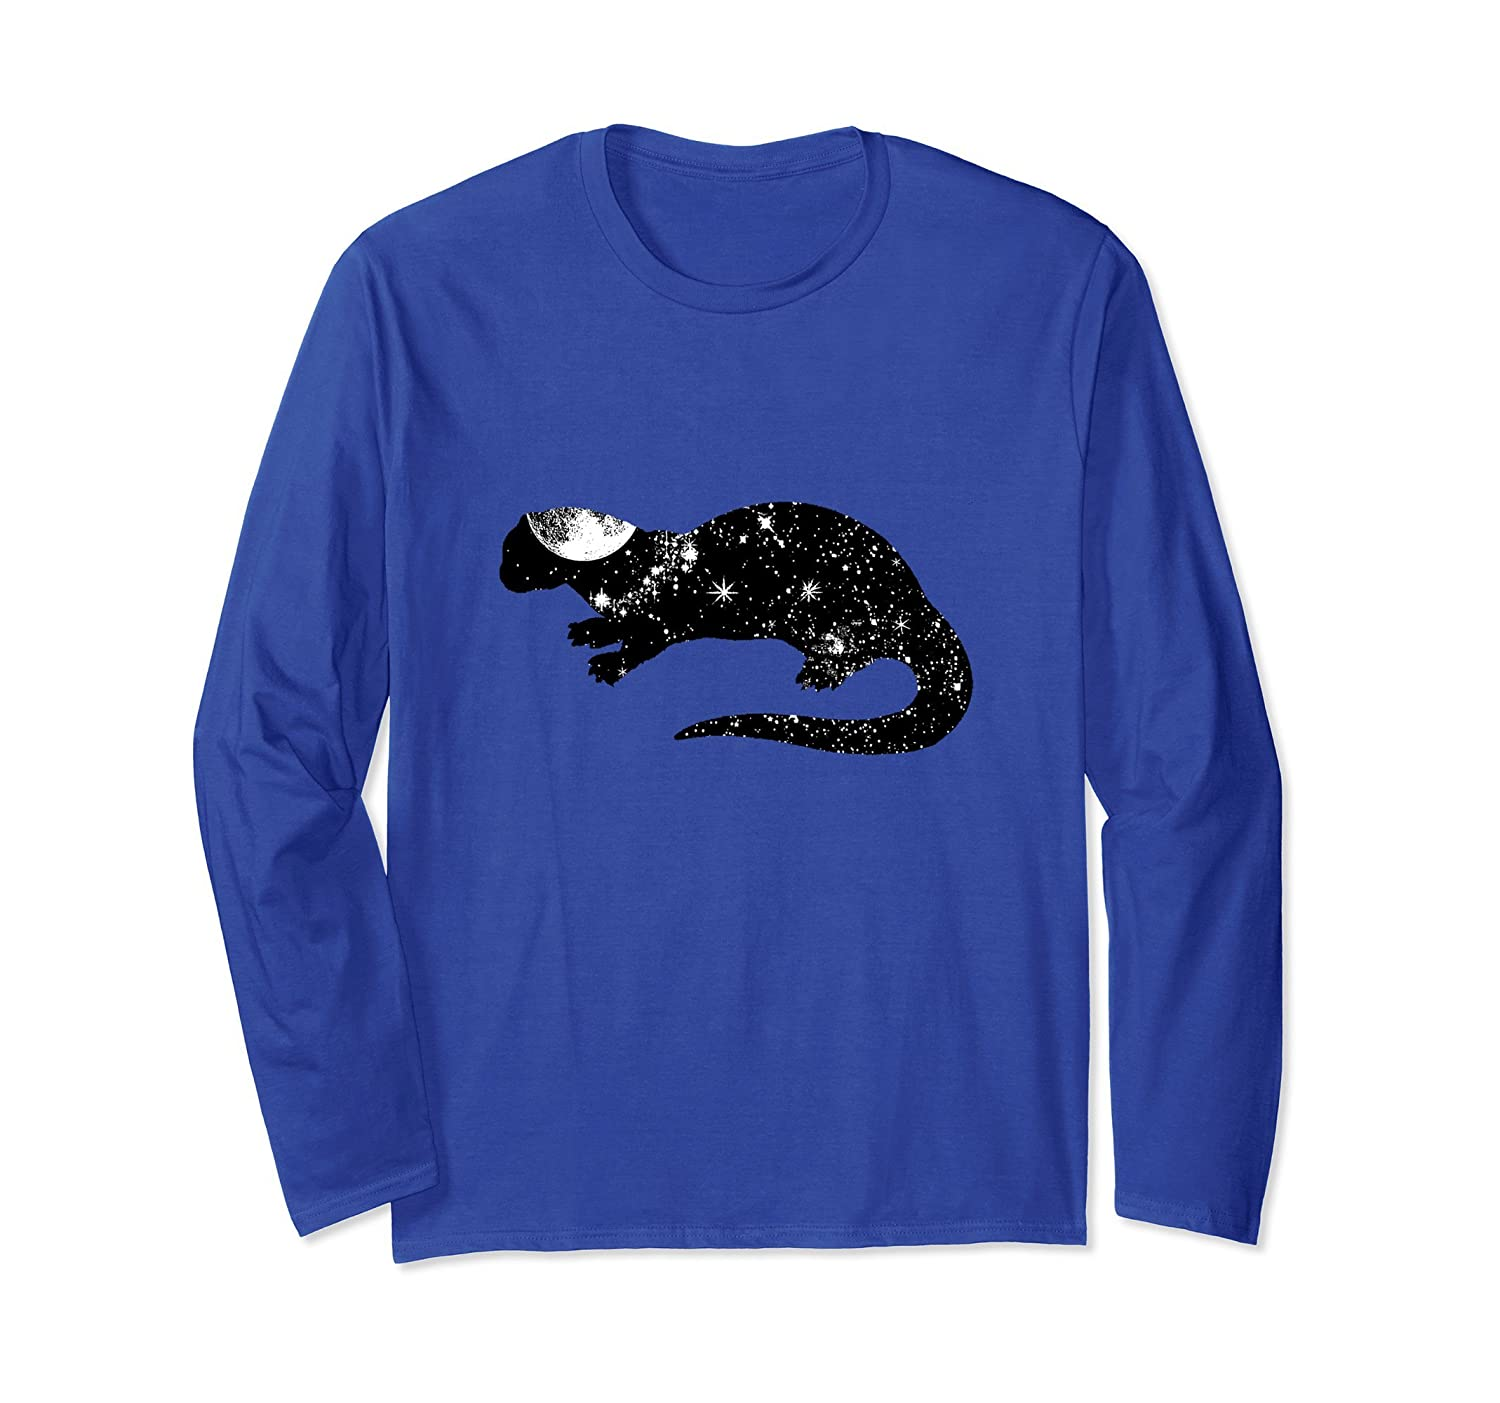 Awesome Otter Space Pun Long Sleeve T-Shirt - Mens & Womens-mt